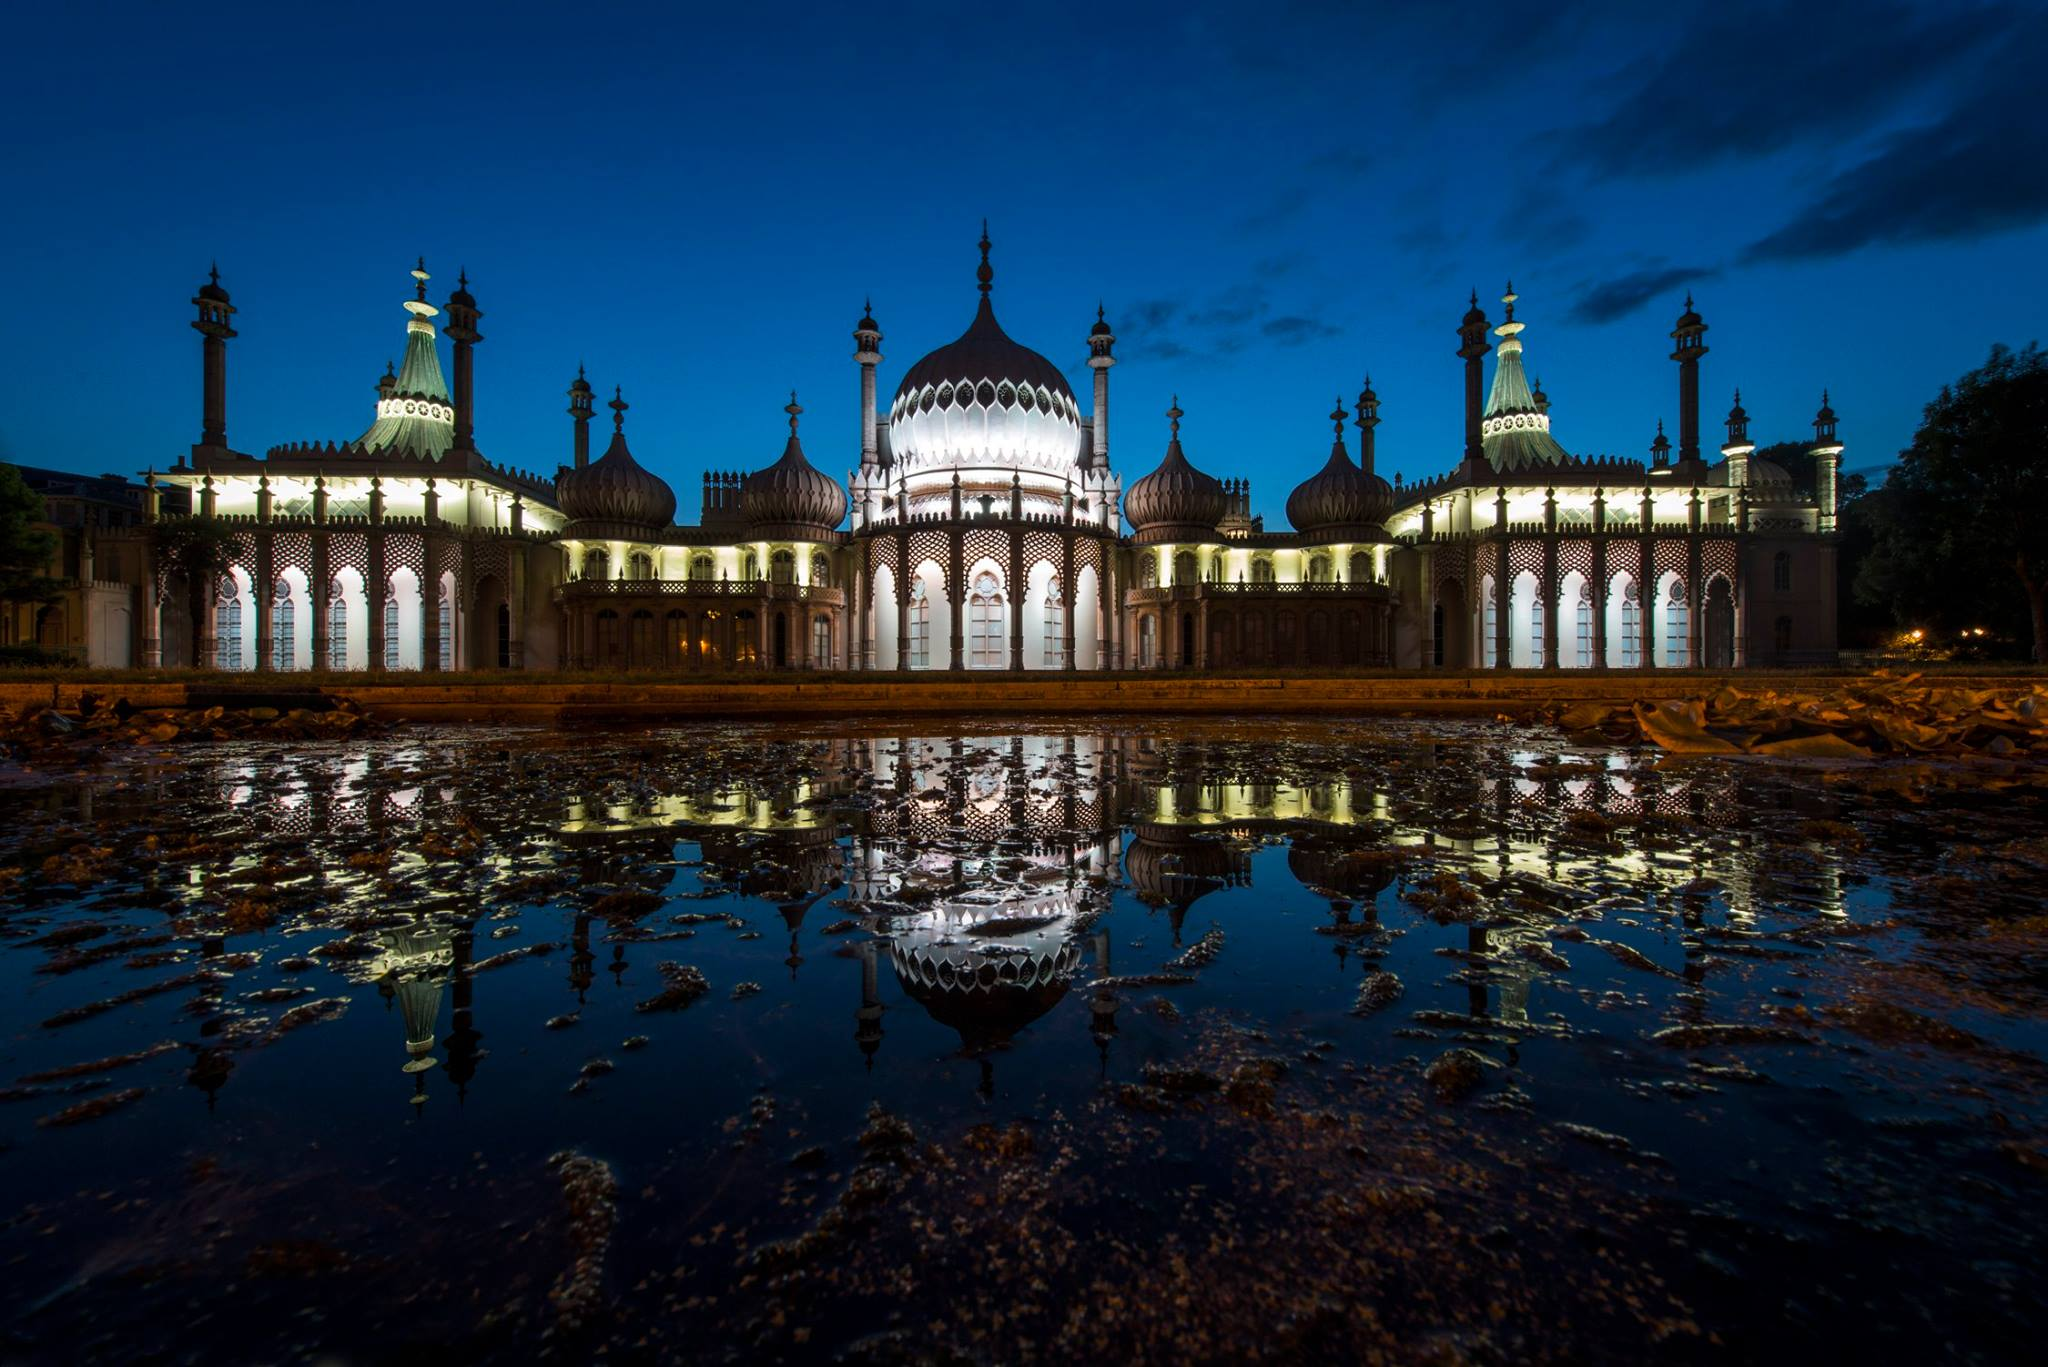 Brighton Pavilion by night